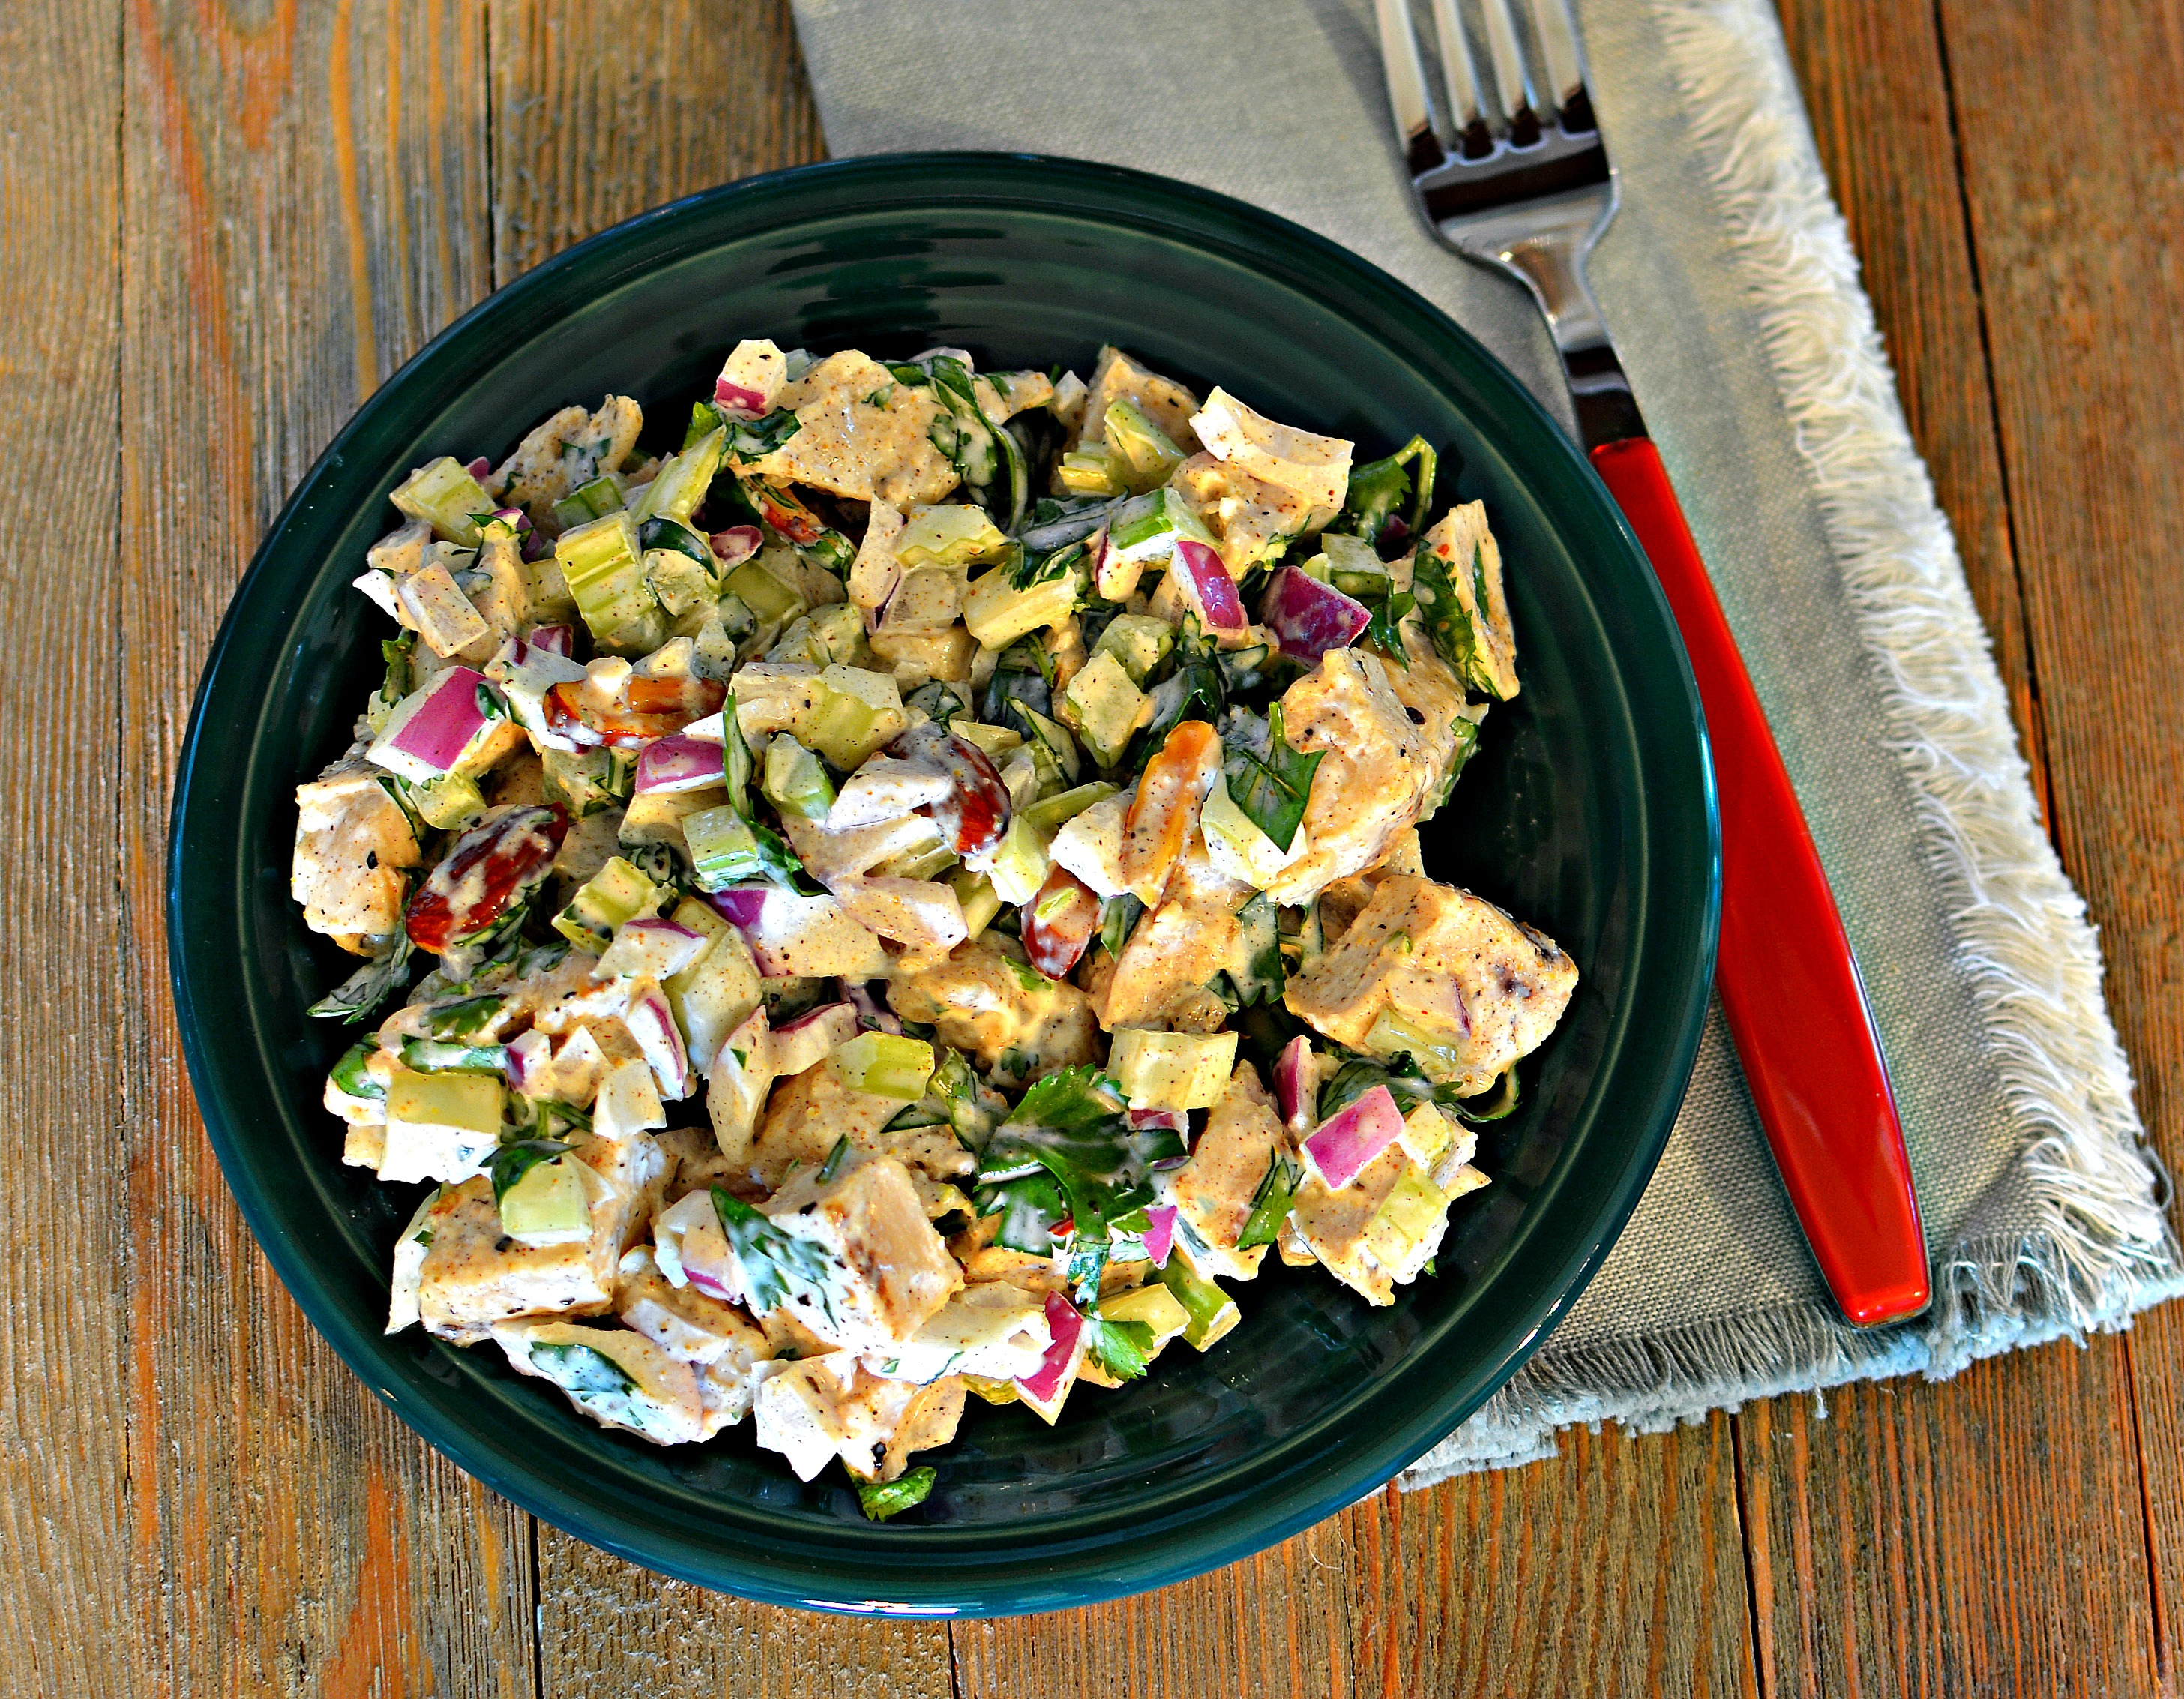 Delicious Cilantro Chicken Salad matchin